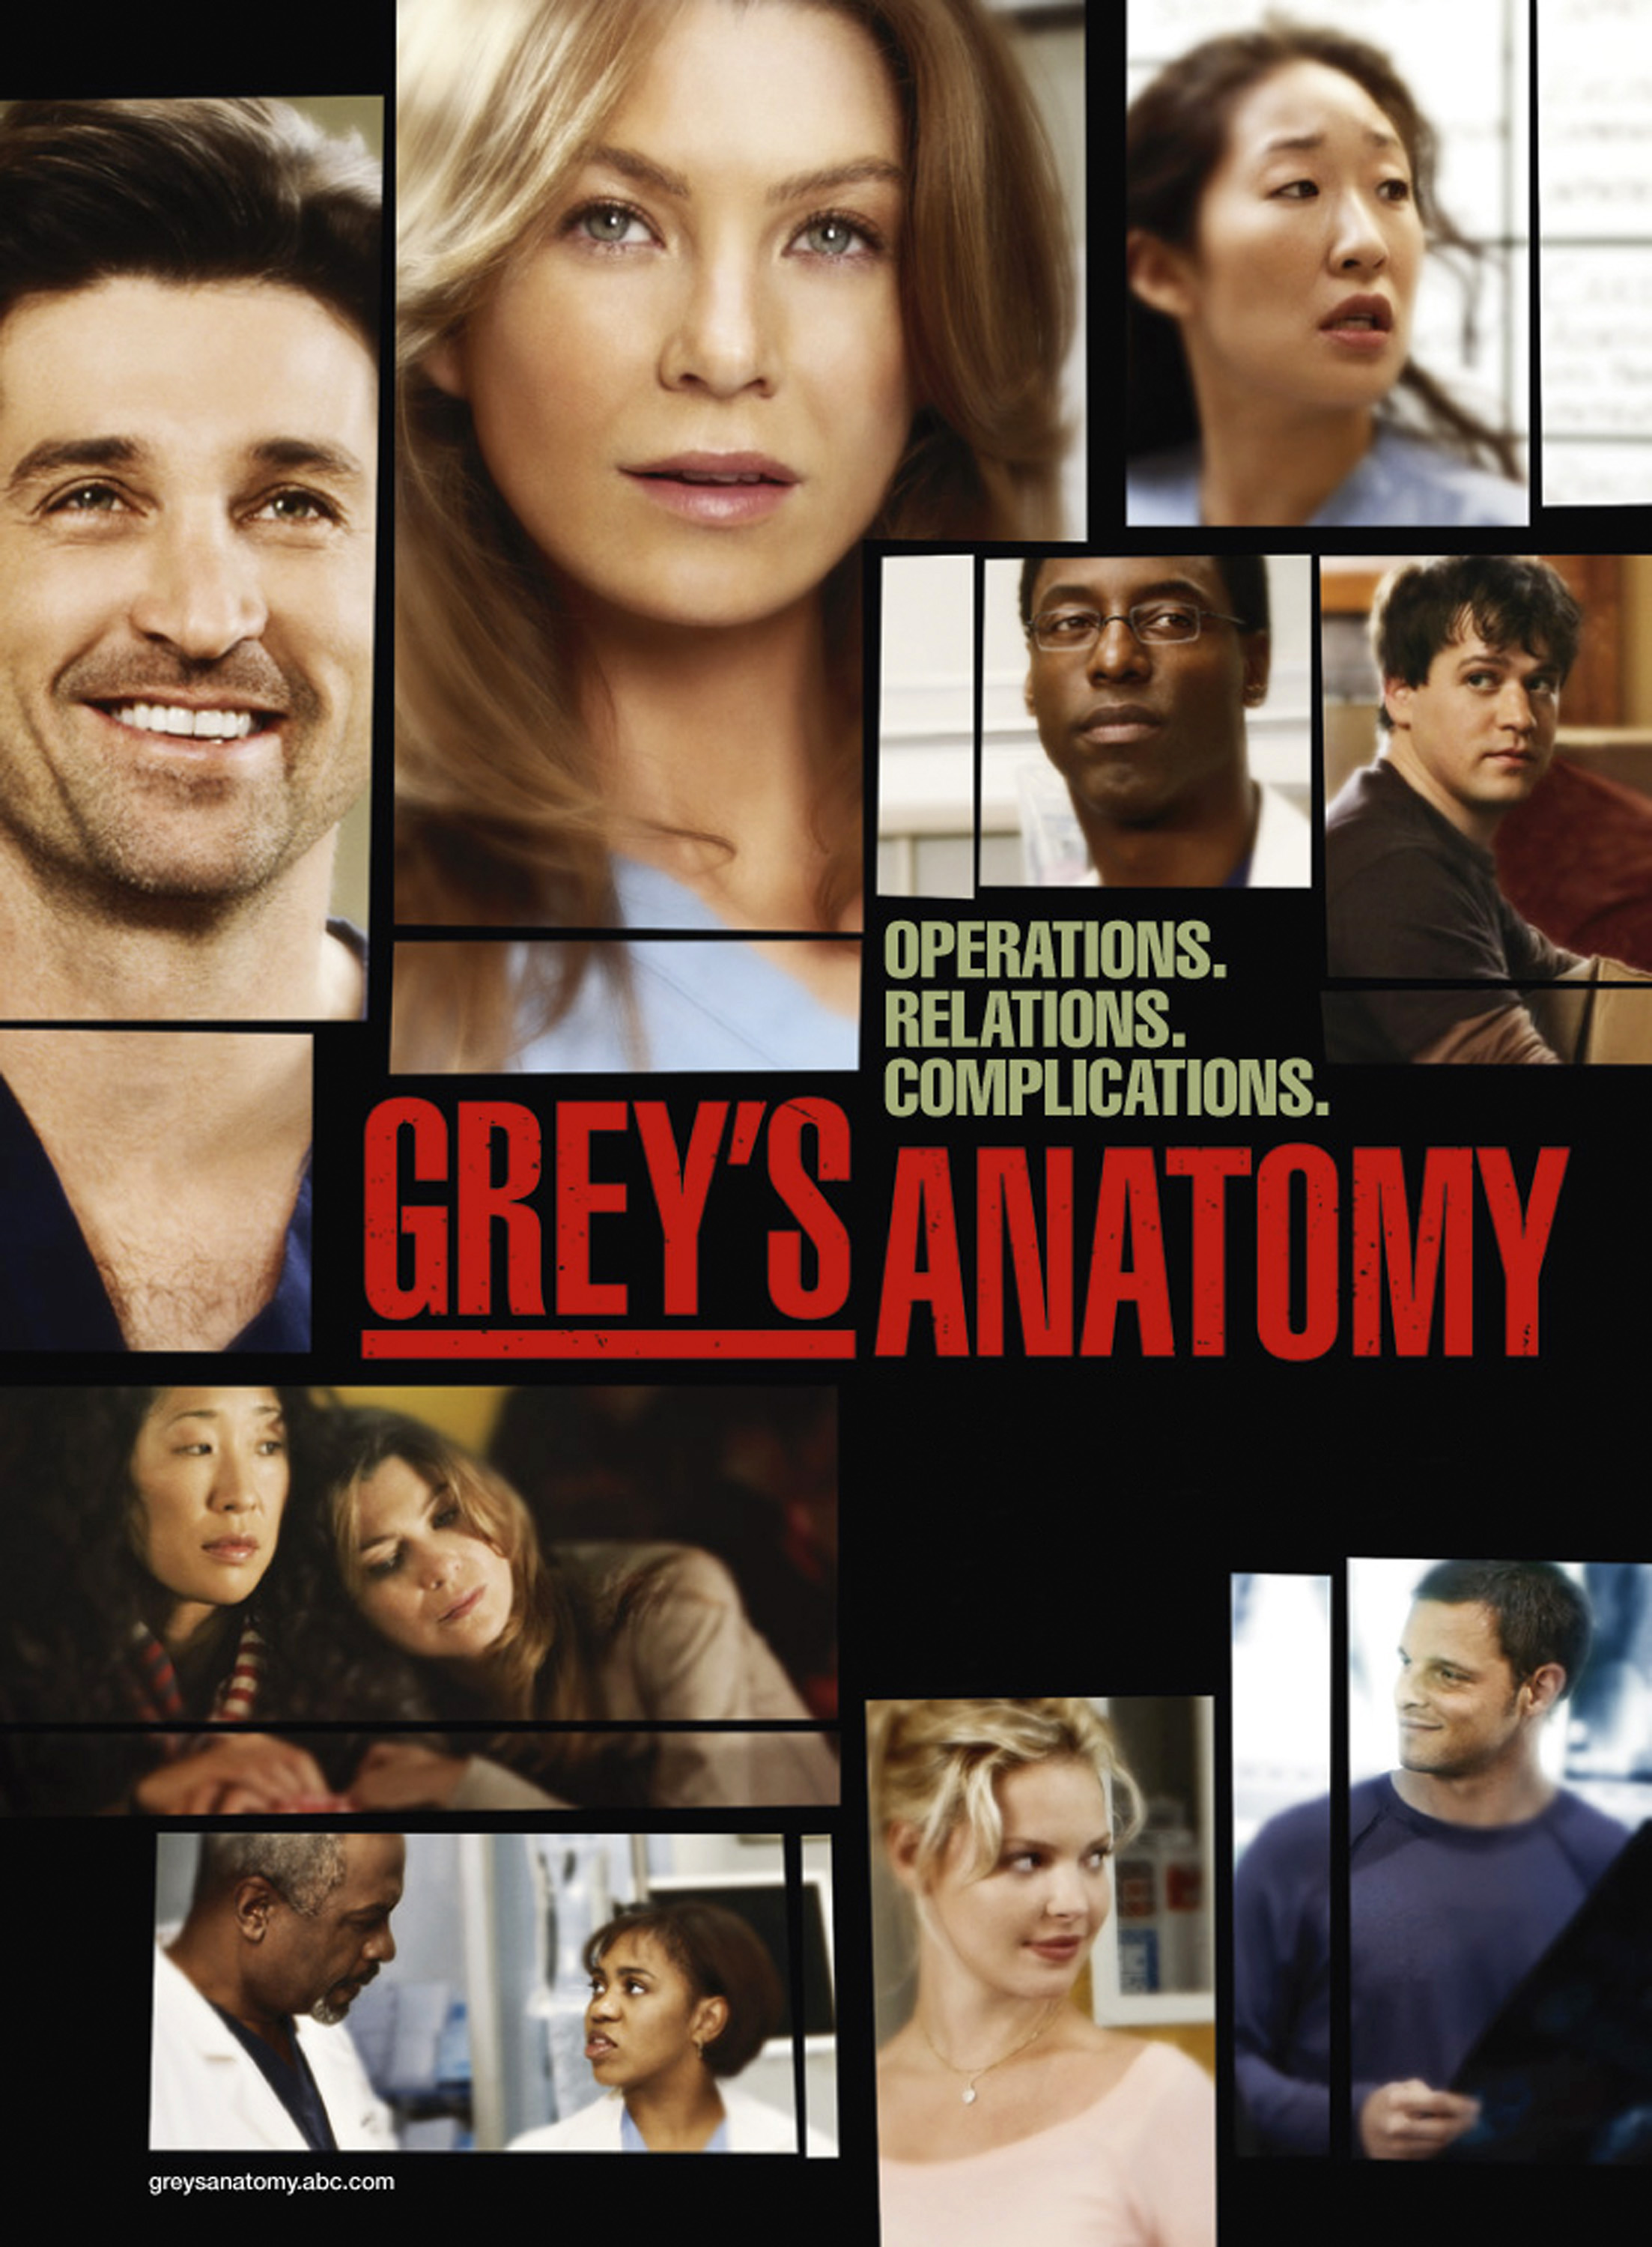 Greys-Anatomy-S01-3-dvdbash | DVDbash